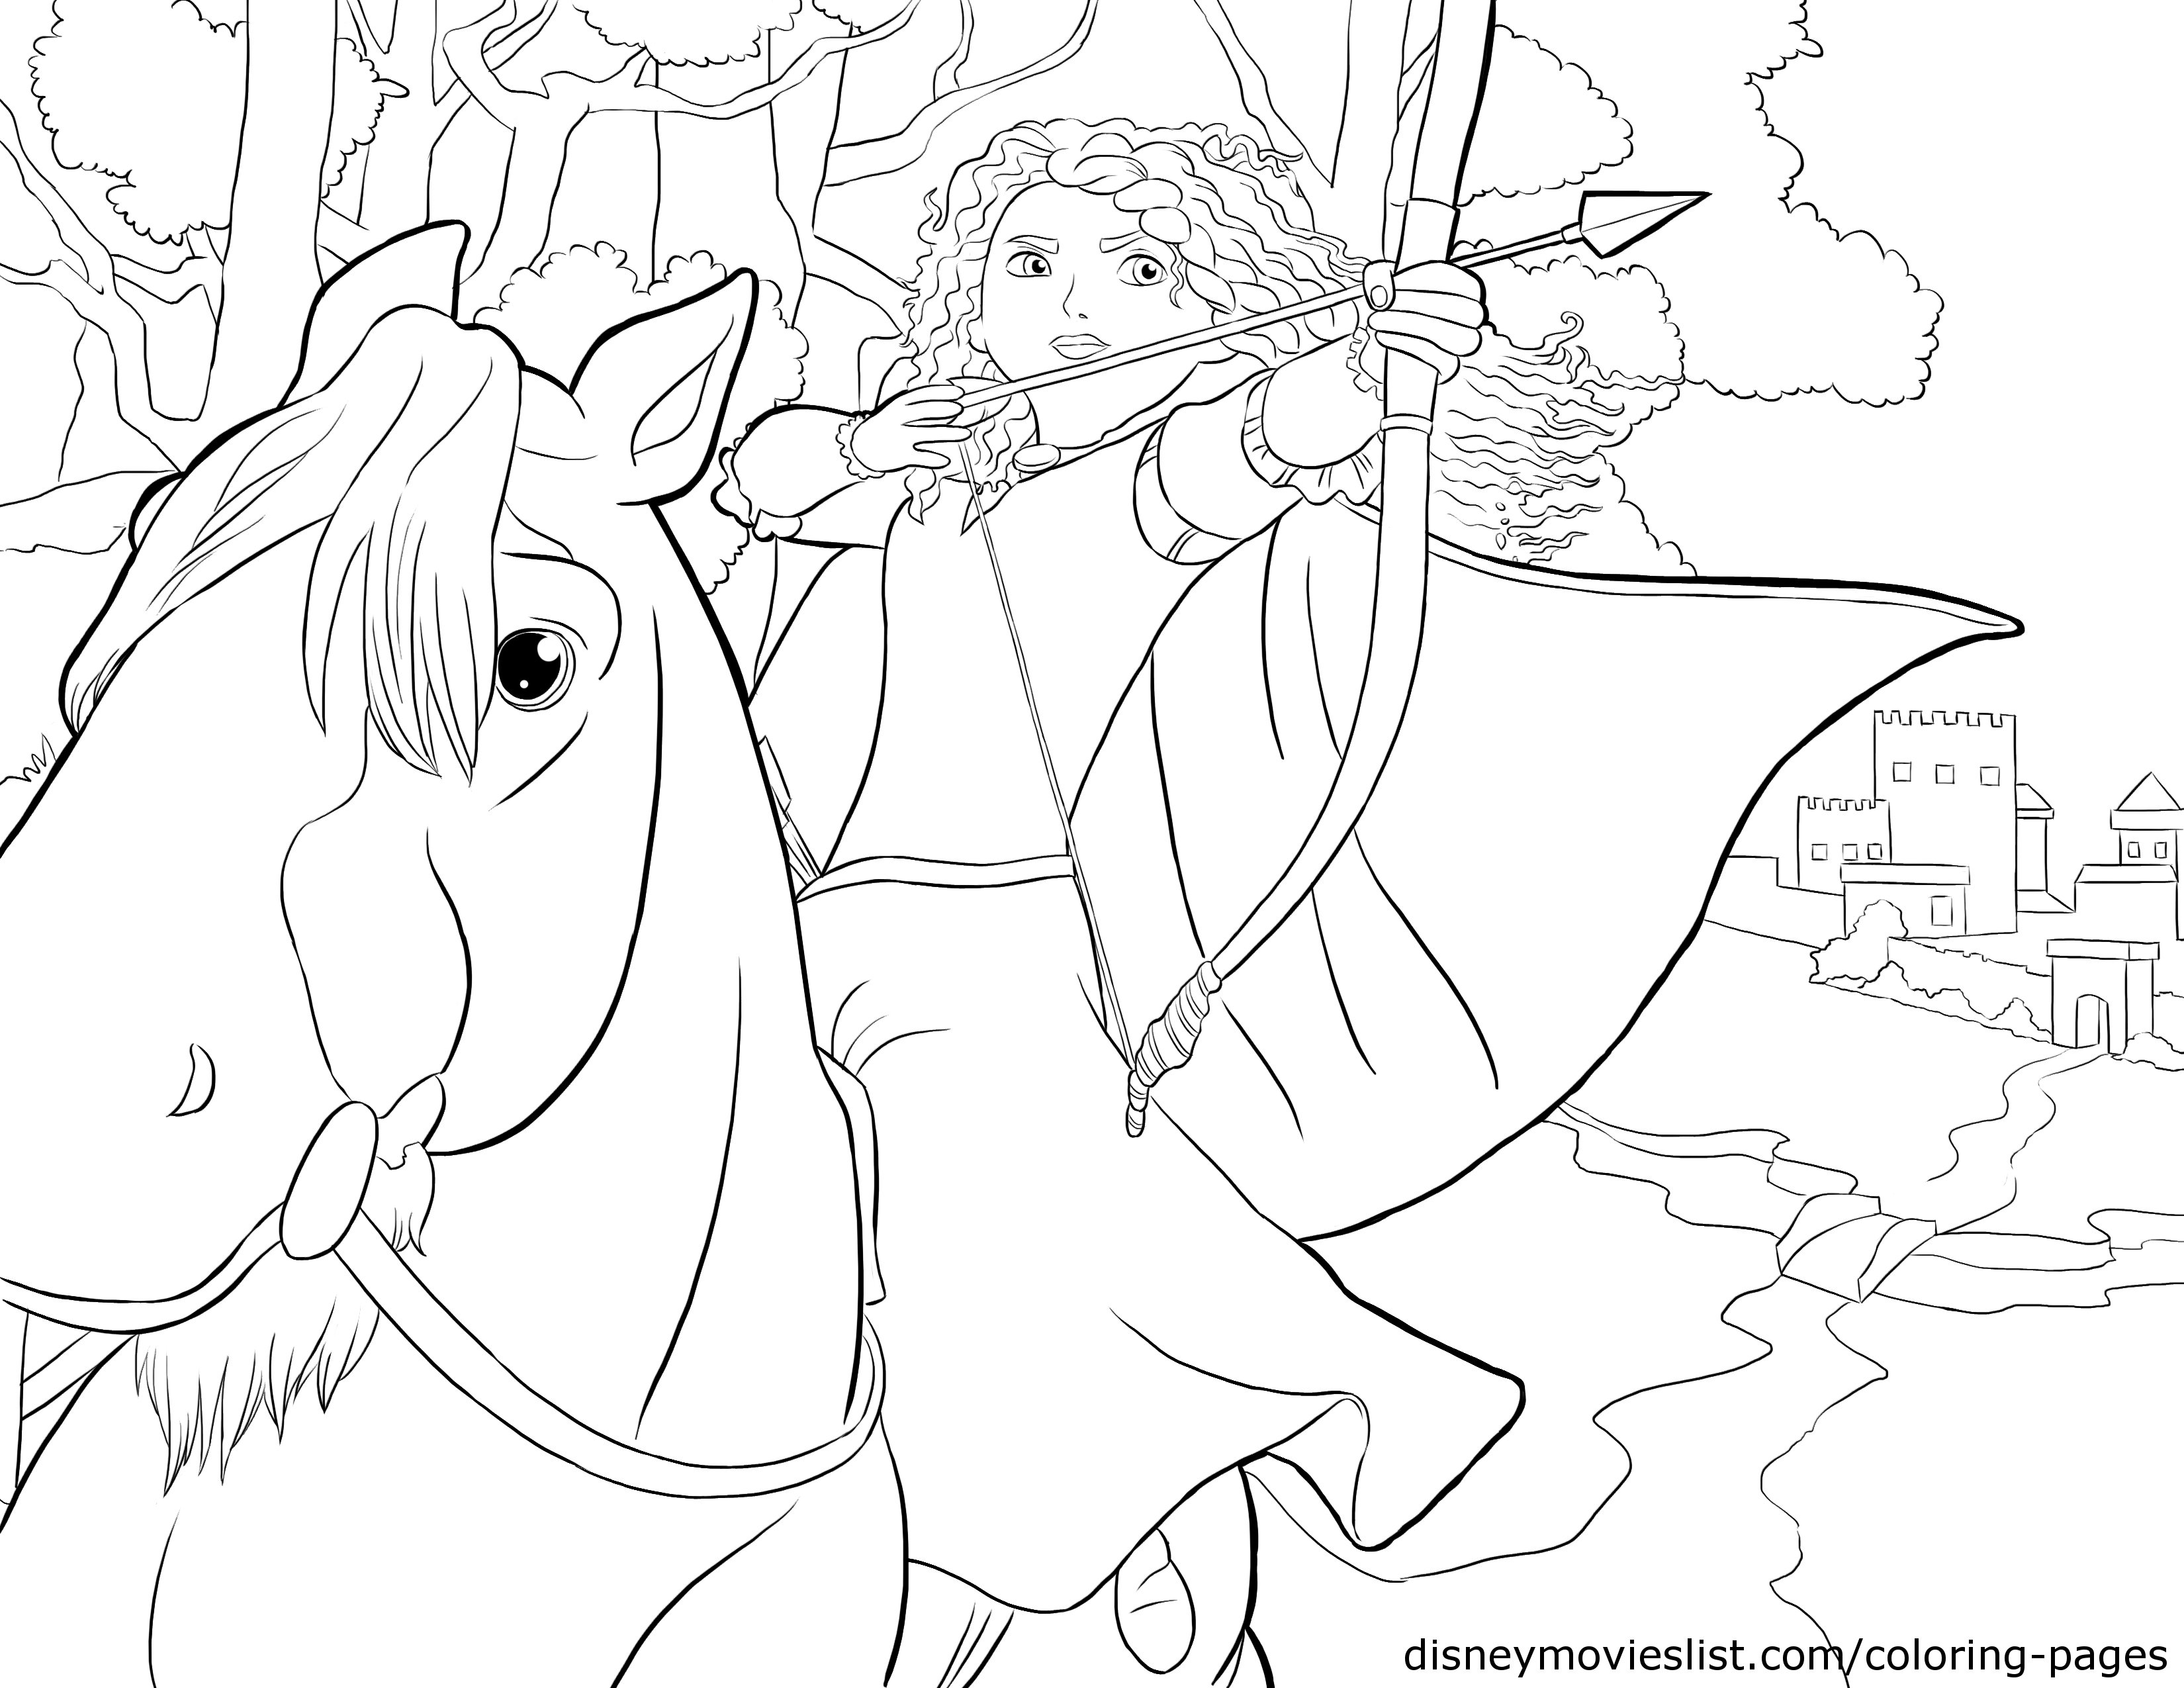 Princess Merida on horse coloring page